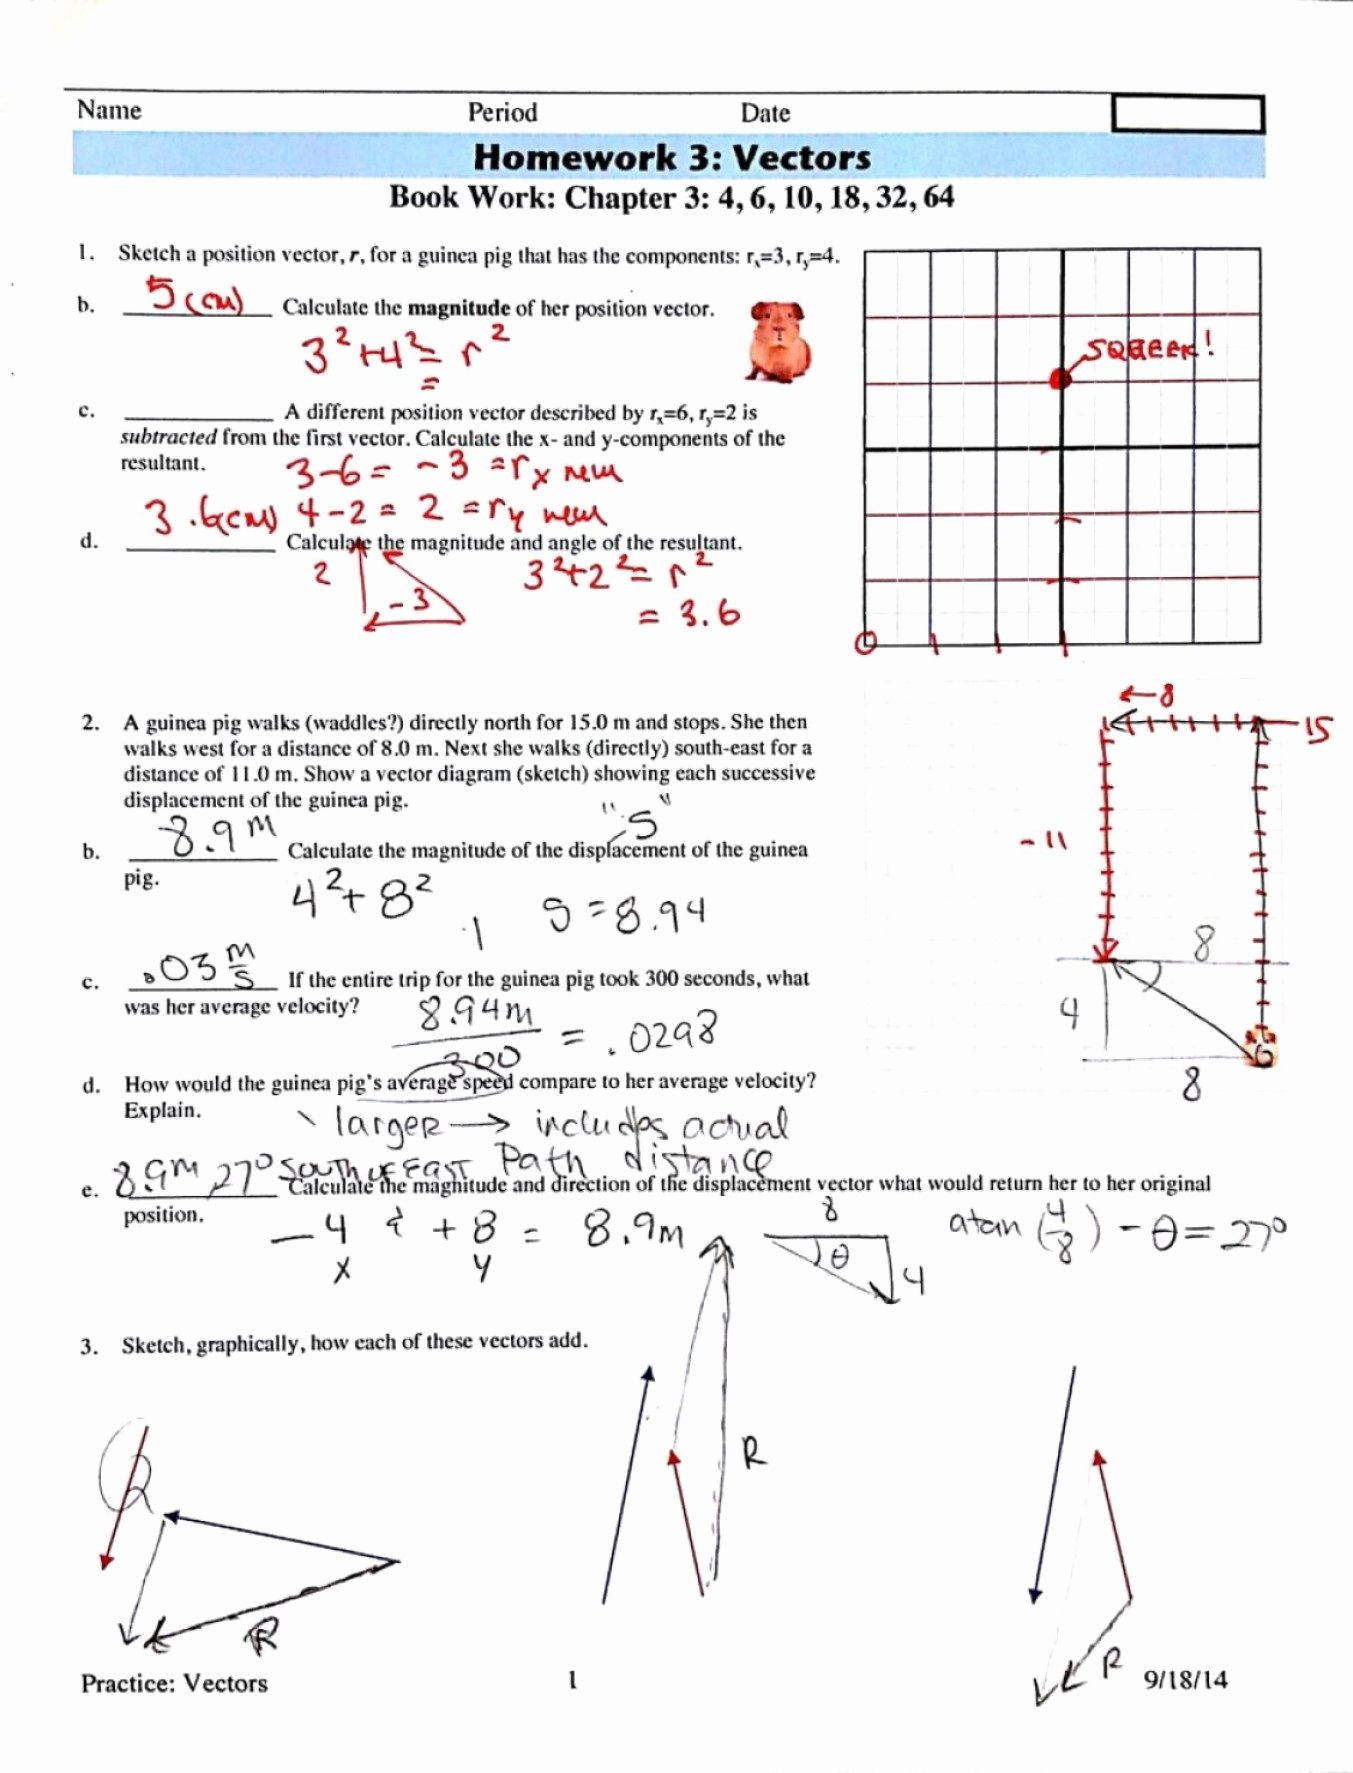 Vector Addition Worksheet with Answers Best Of Best top Vector Addition Worksheet with Answers Image Li